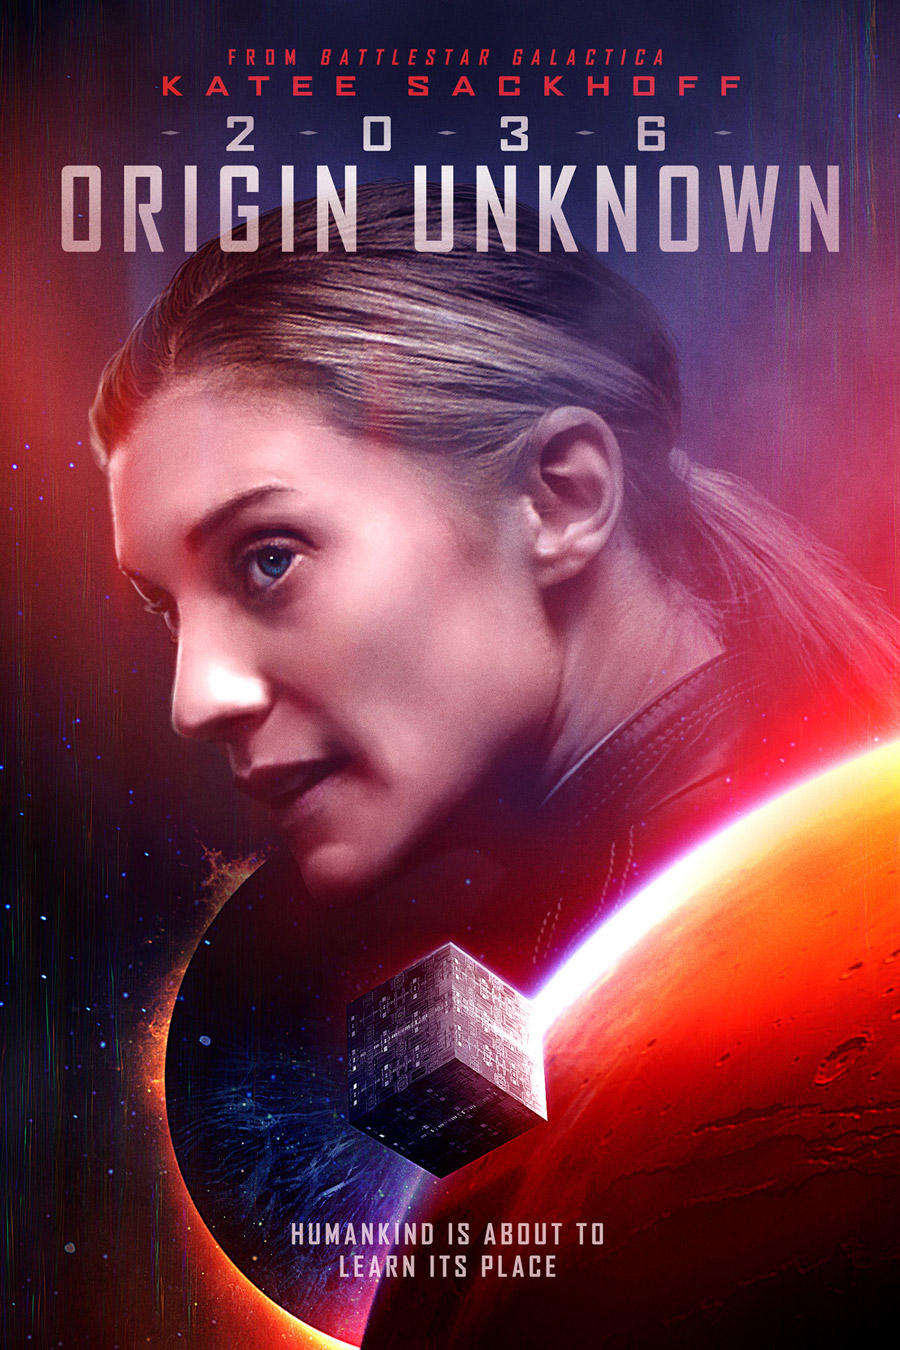 2036 Origin Unknown poster art